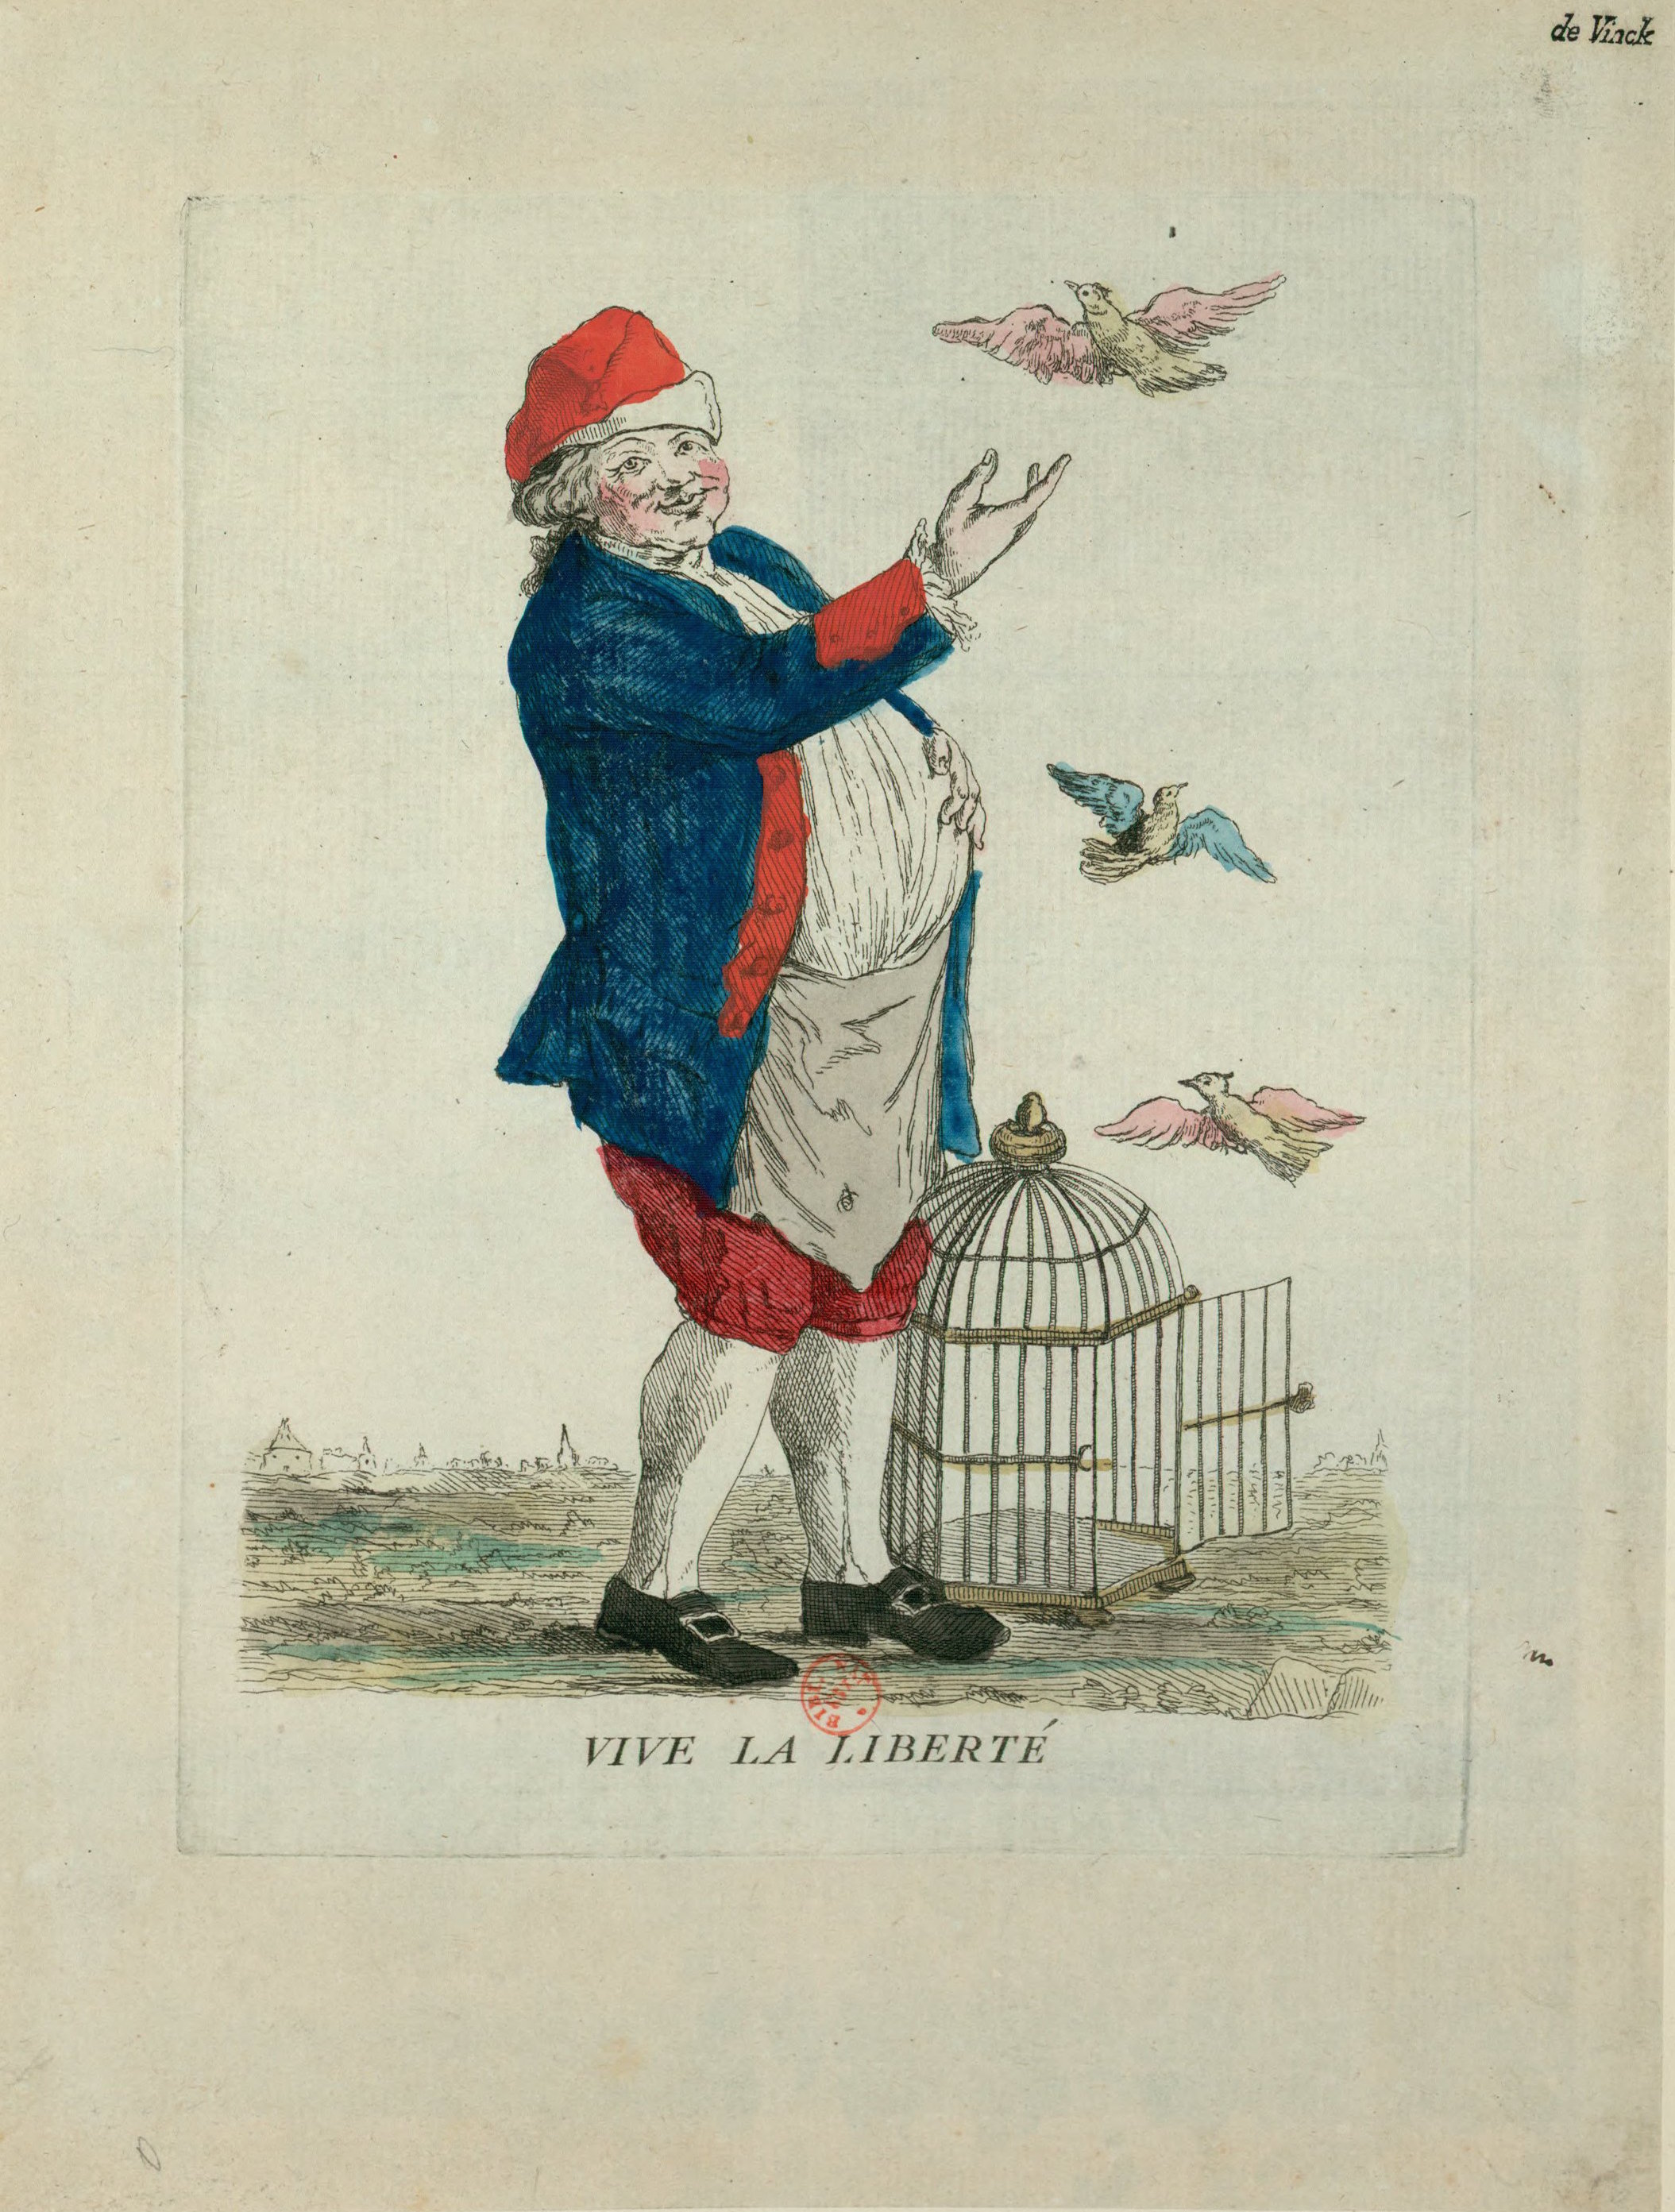 Engraving of King Louis XVI lets birds representing liberty out of a cage